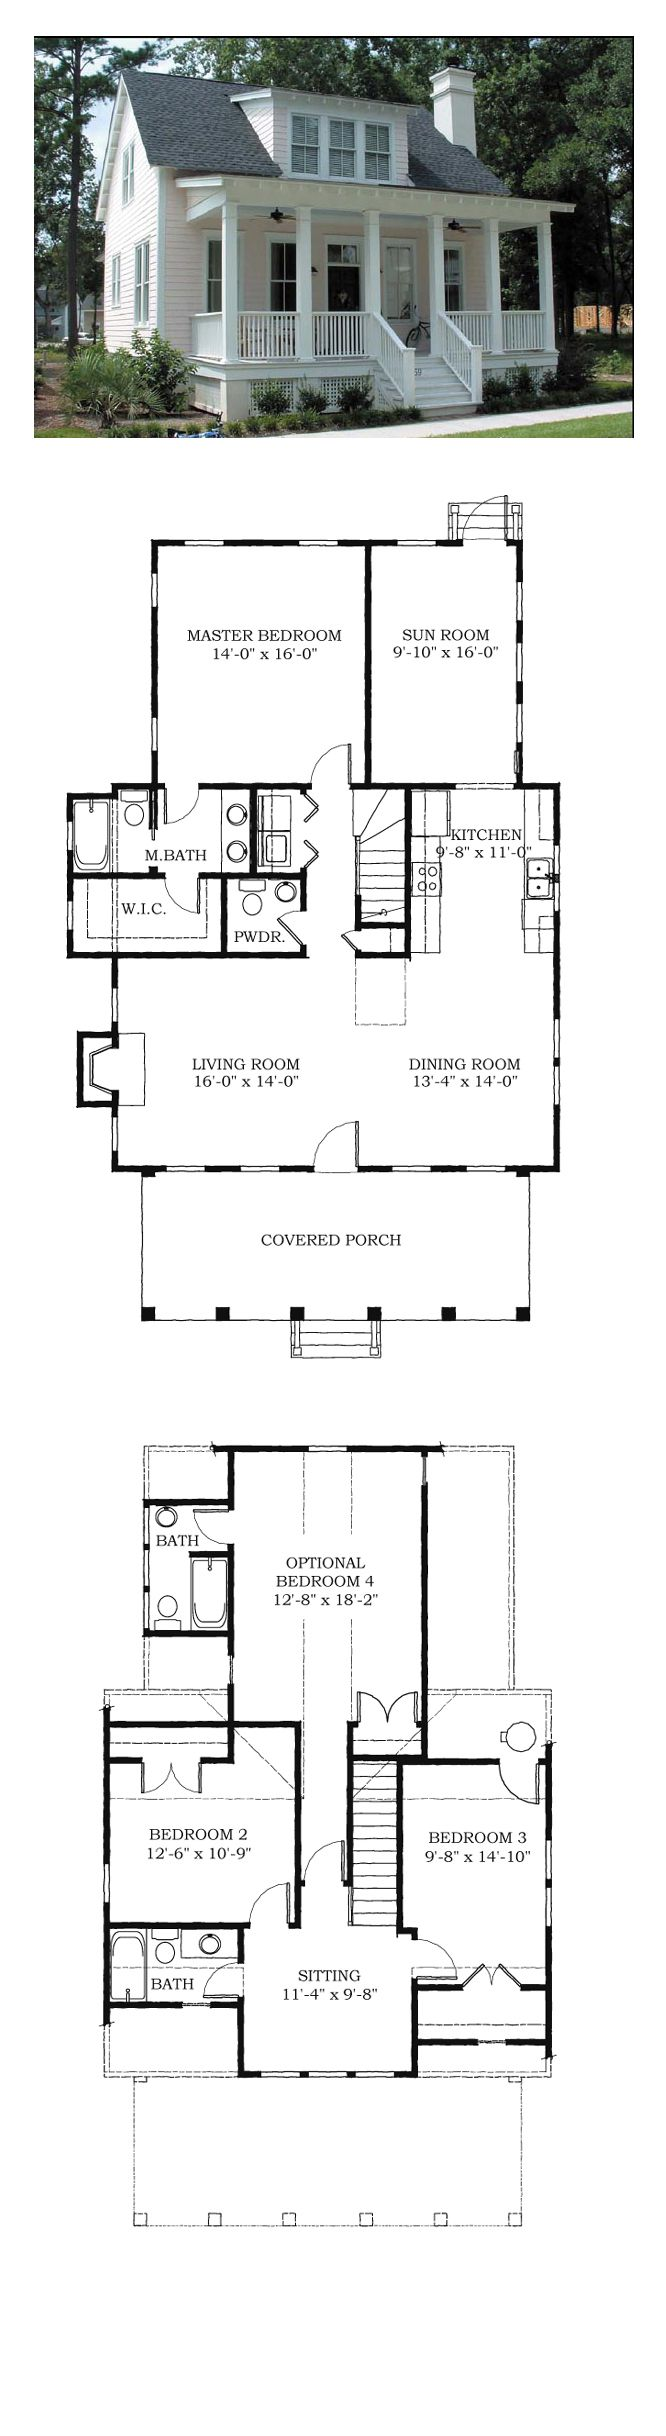 cool house plan id chp 38703 total living area 1783 sq - Small Houses Plans